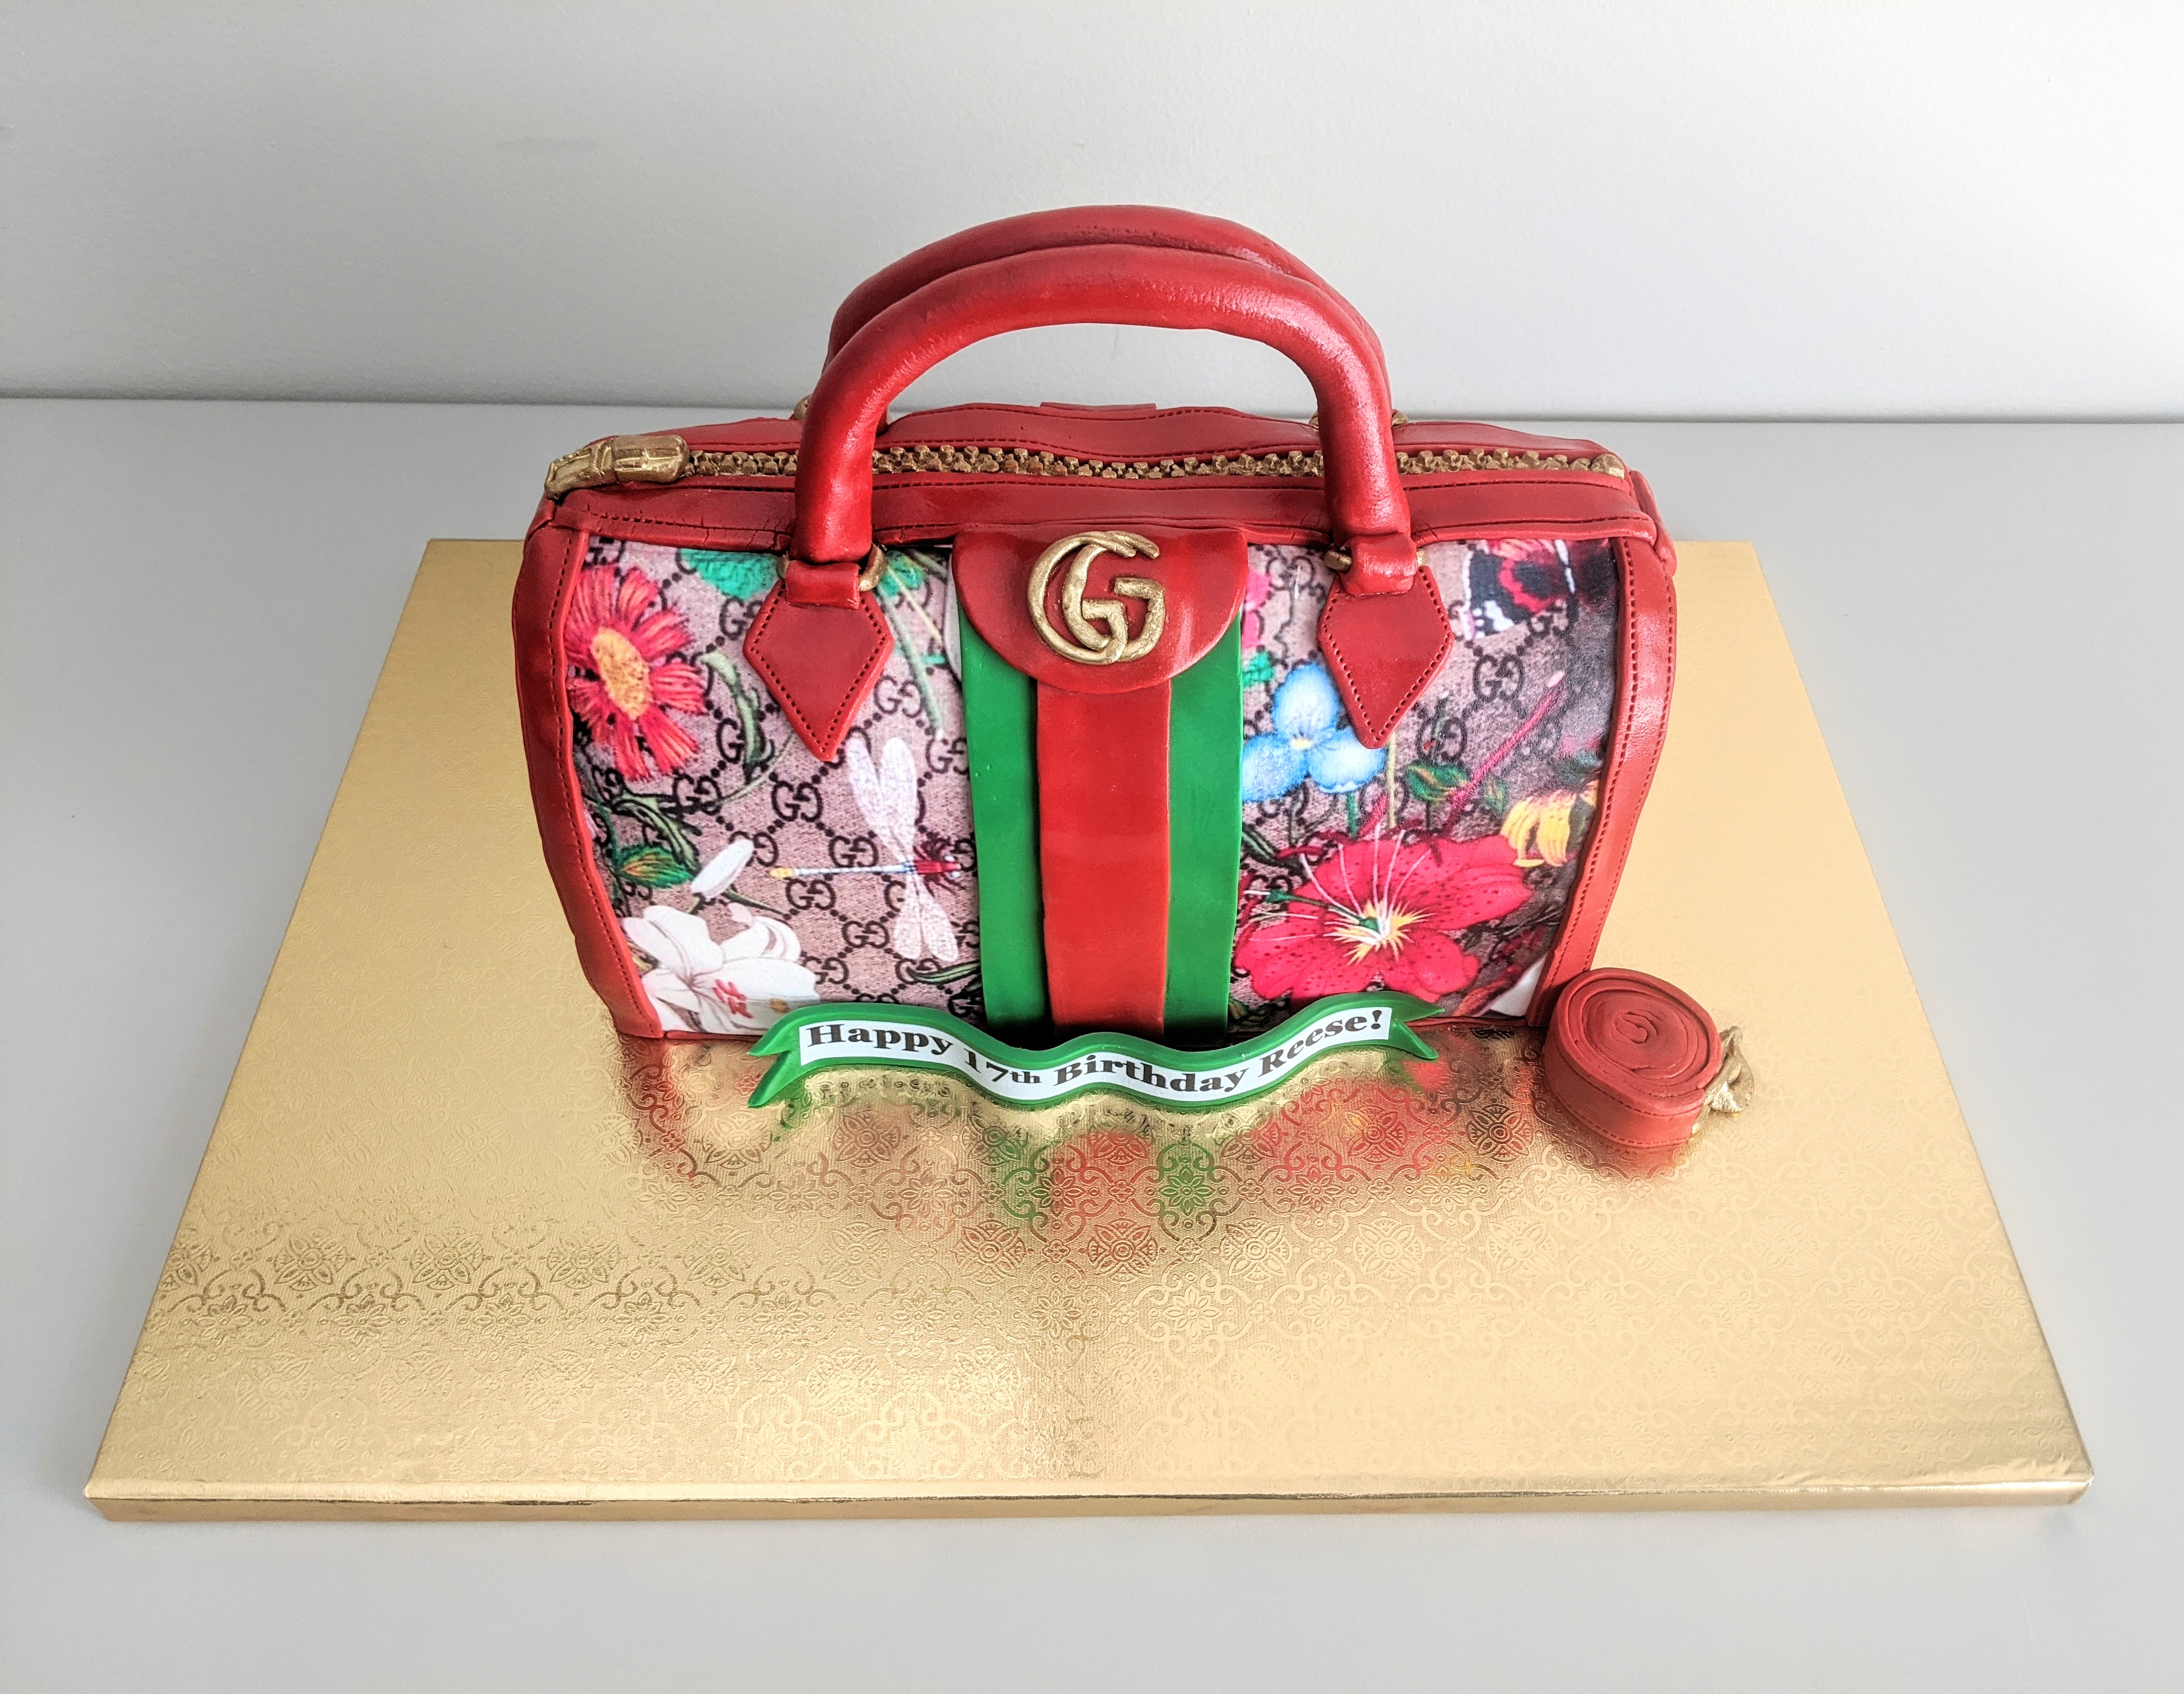 Gucci Floral Purse Cake